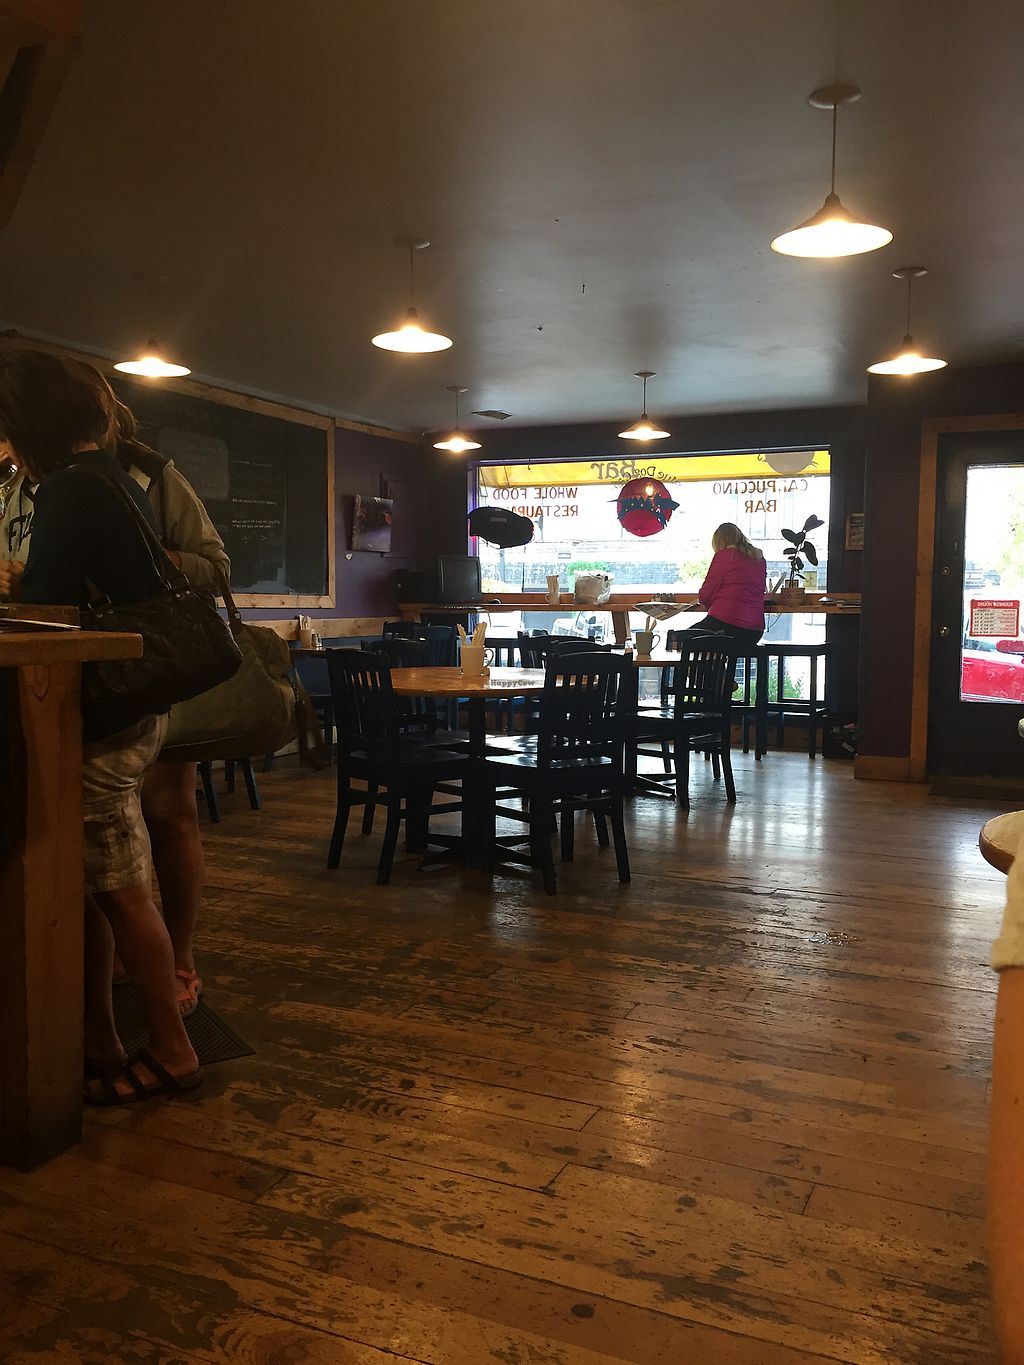 """Photo of Blue Dog Cafe  by <a href=""""/members/profile/isabellar"""">isabellar</a> <br/>Inside  <br/> September 9, 2017  - <a href='/contact/abuse/image/100437/302726'>Report</a>"""